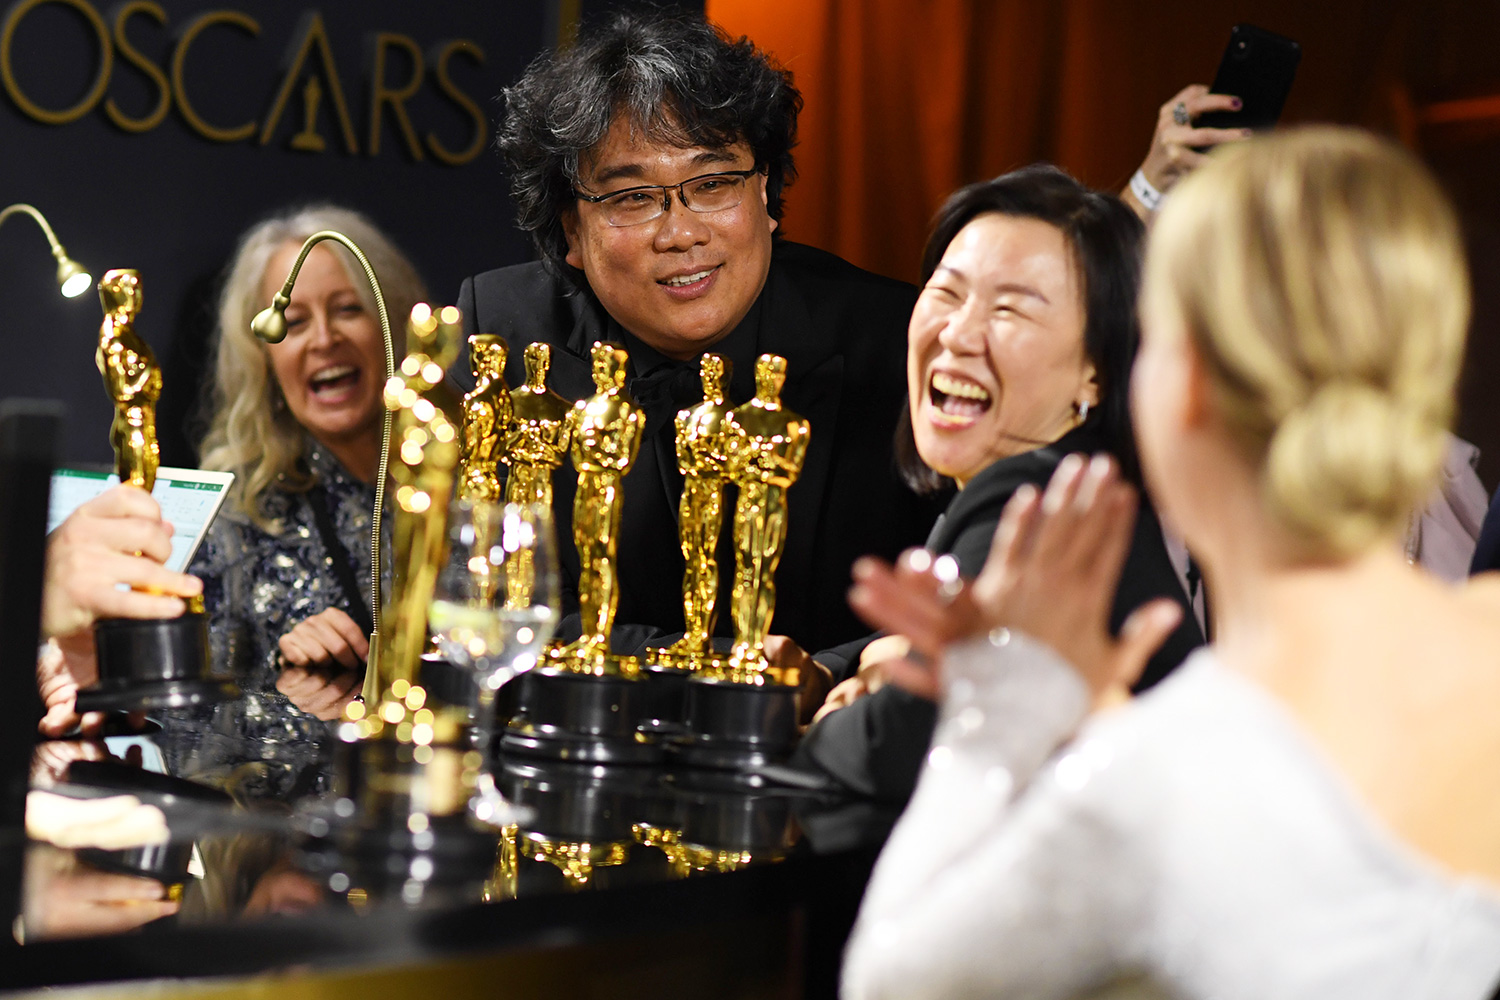 South Korean film director Bong Joon Ho (L), producer Kwak Sin-ae and US actress Renee Zellweger (R) wait for their awards to be engraved as they attend the 92nd Oscars Governors Ball at the Hollywood & Highland Center in Hollywood, California on February 9, 2020.